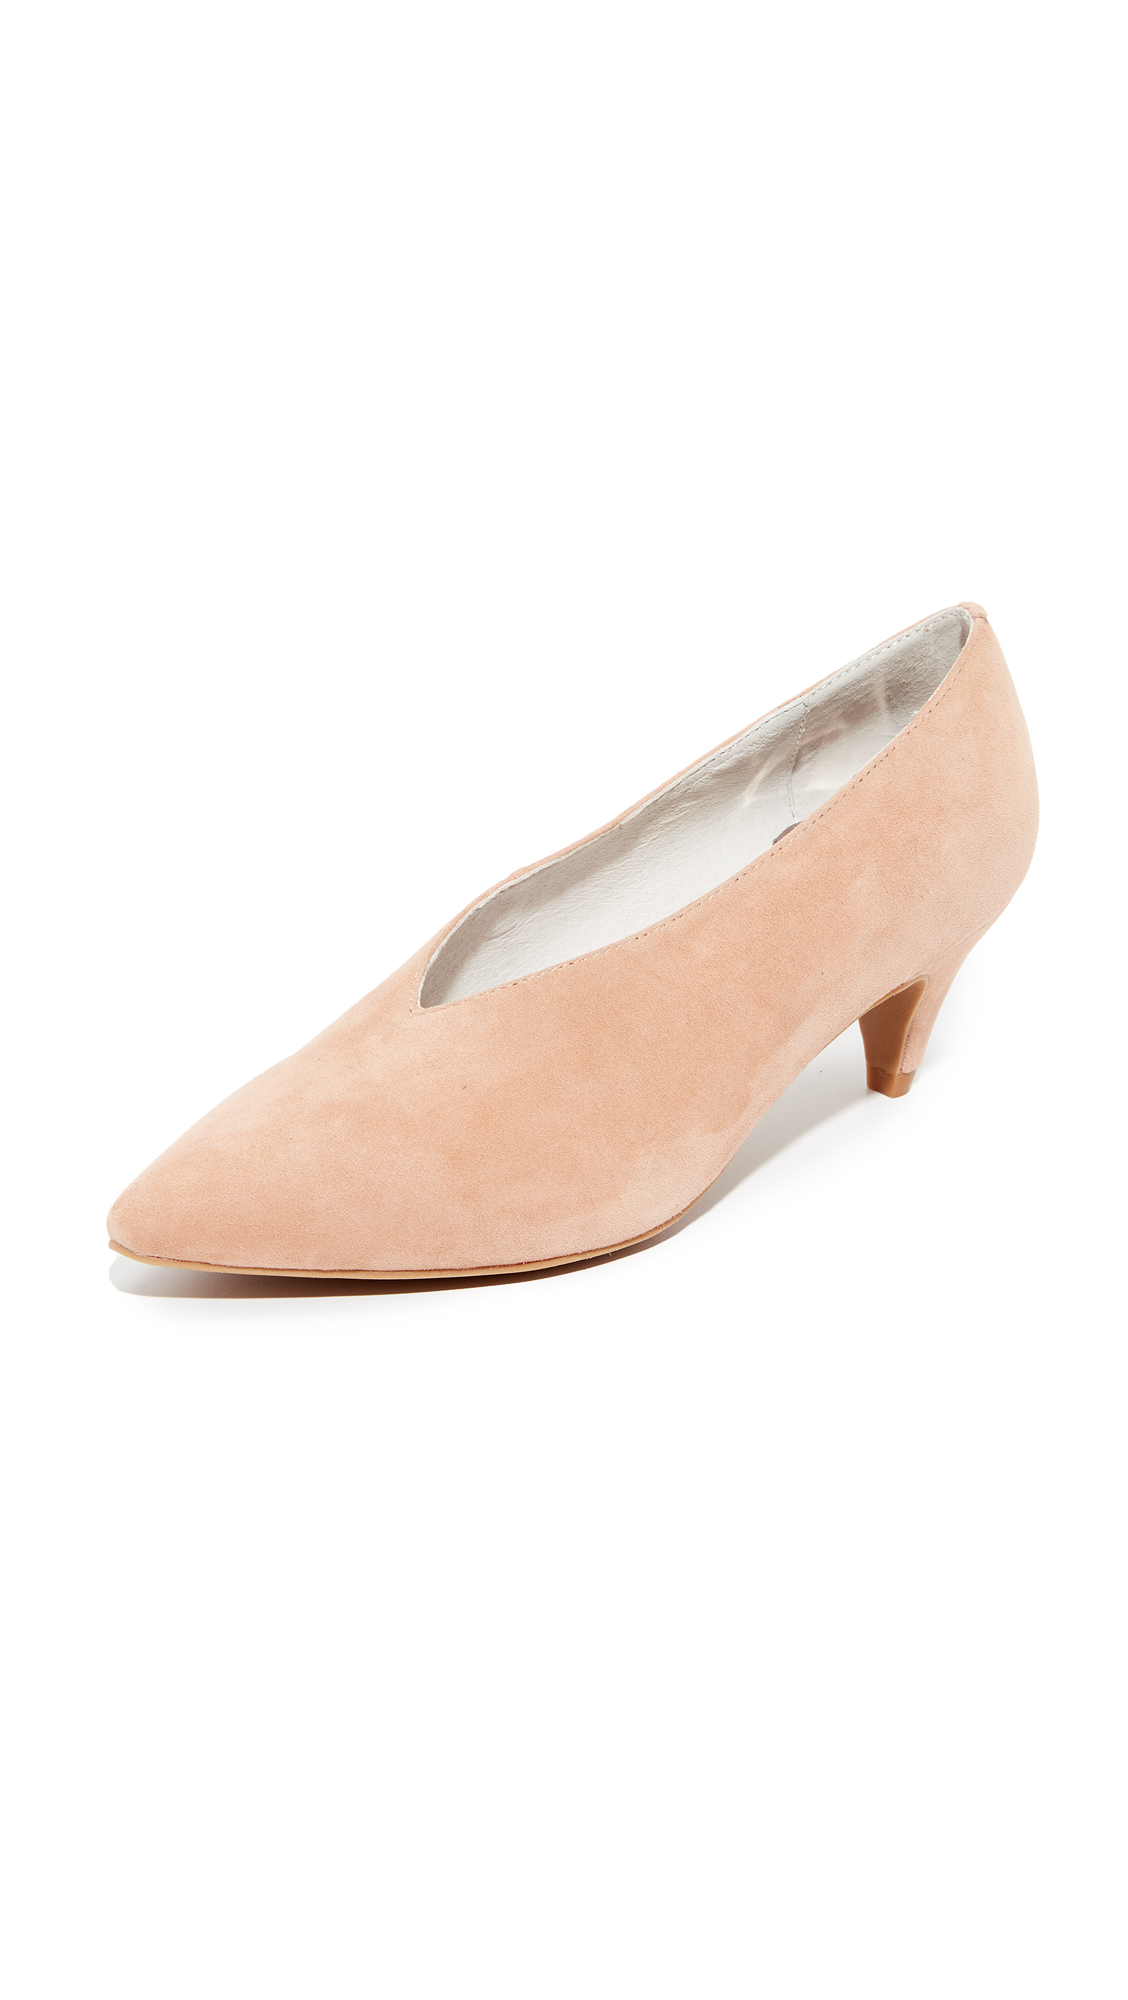 Jeffrey Campbell Carla Low Heel Pumps - Blush